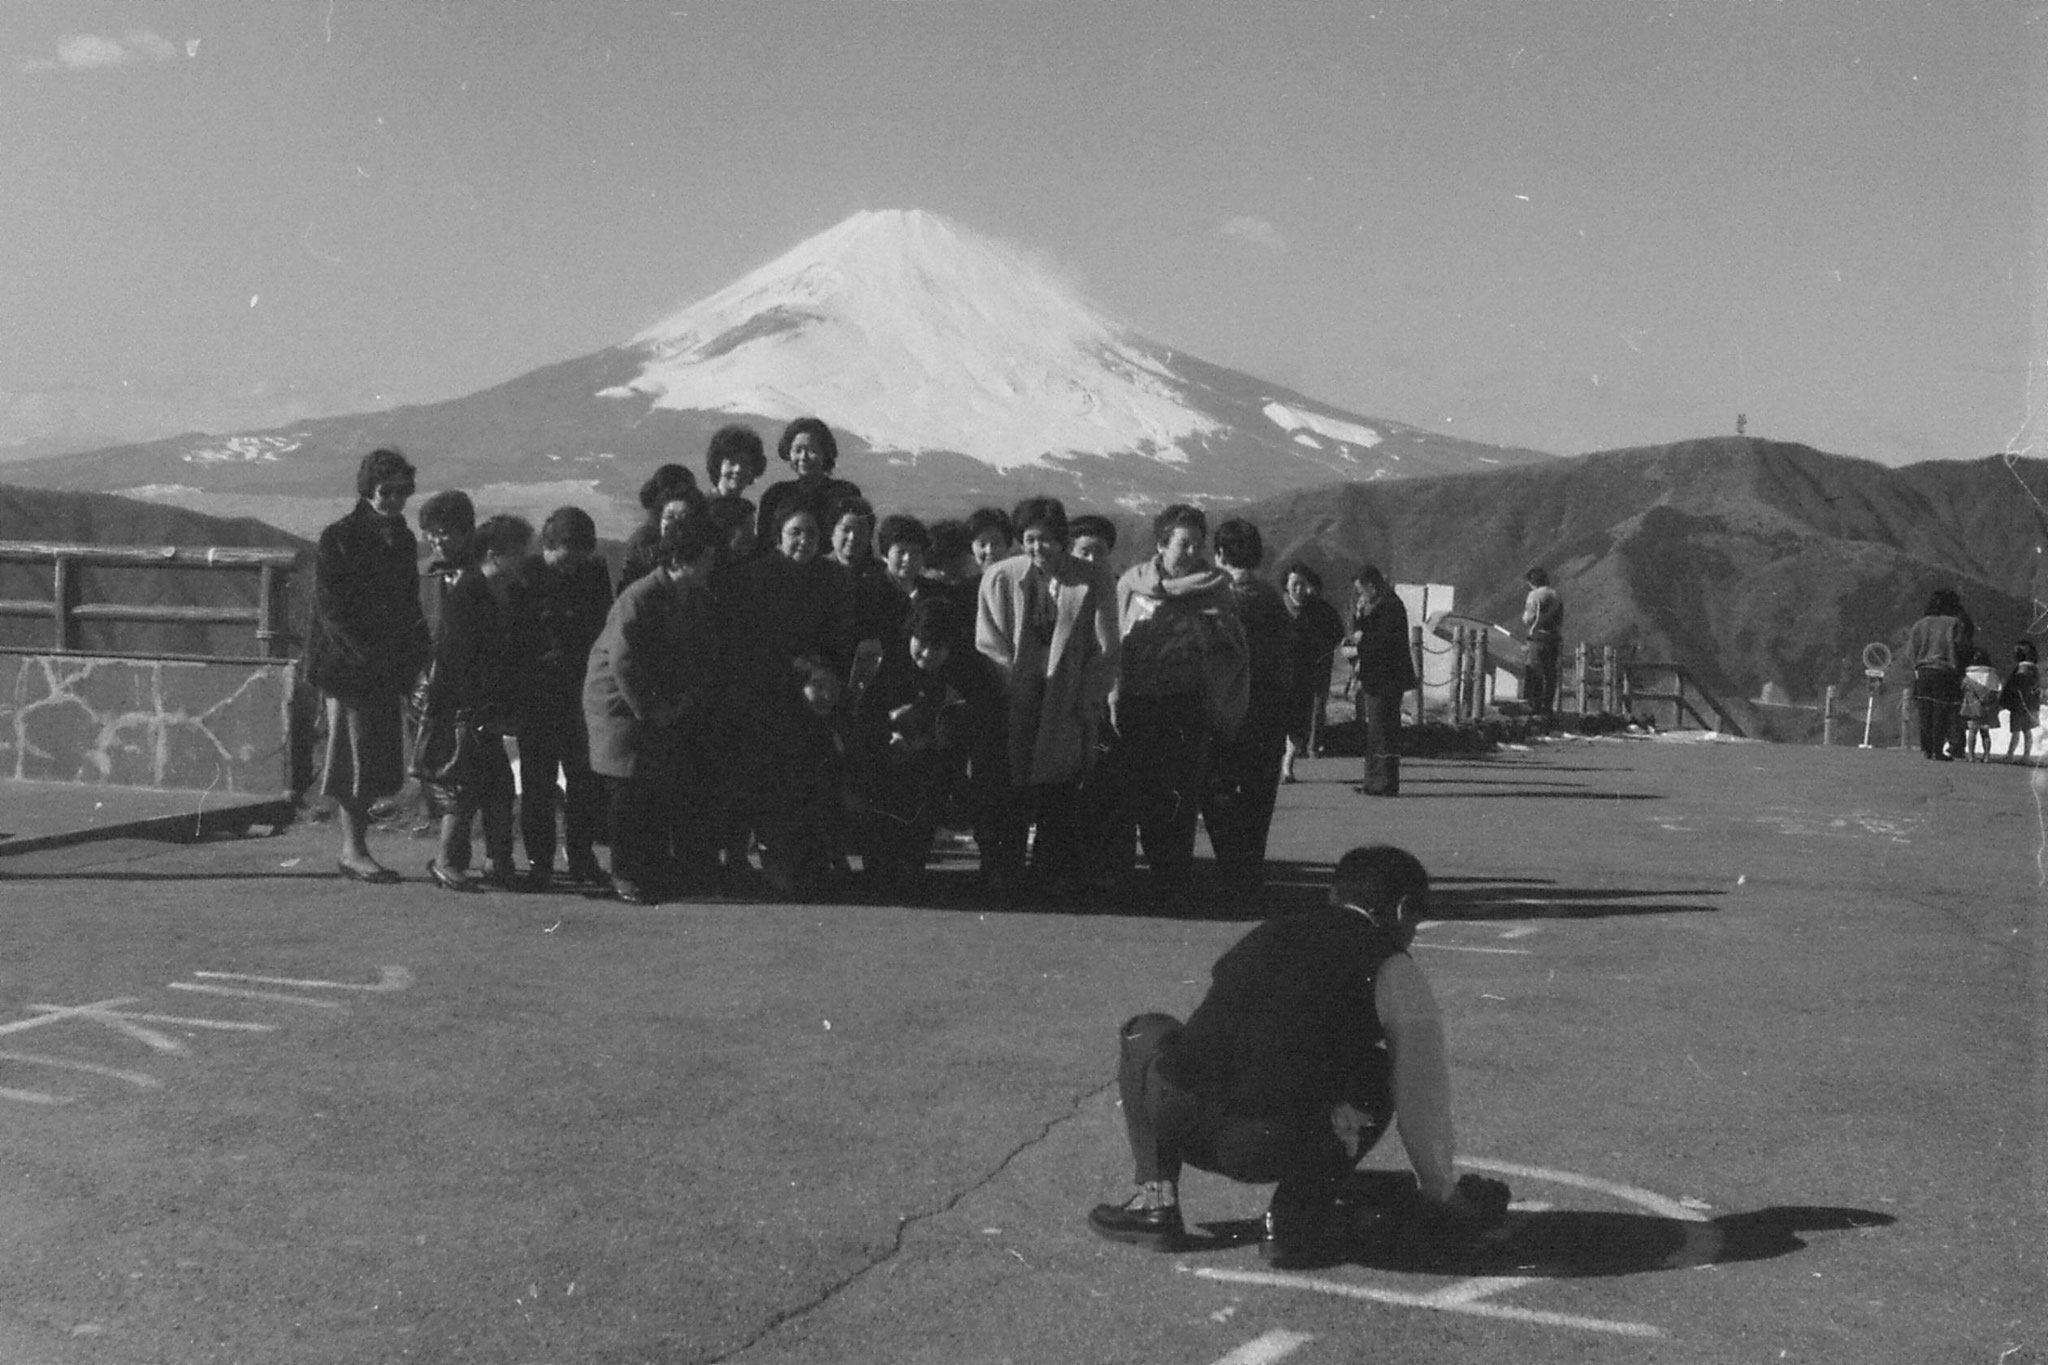 28/1/1989: 26:group posing in front of Fuji at Owakudani